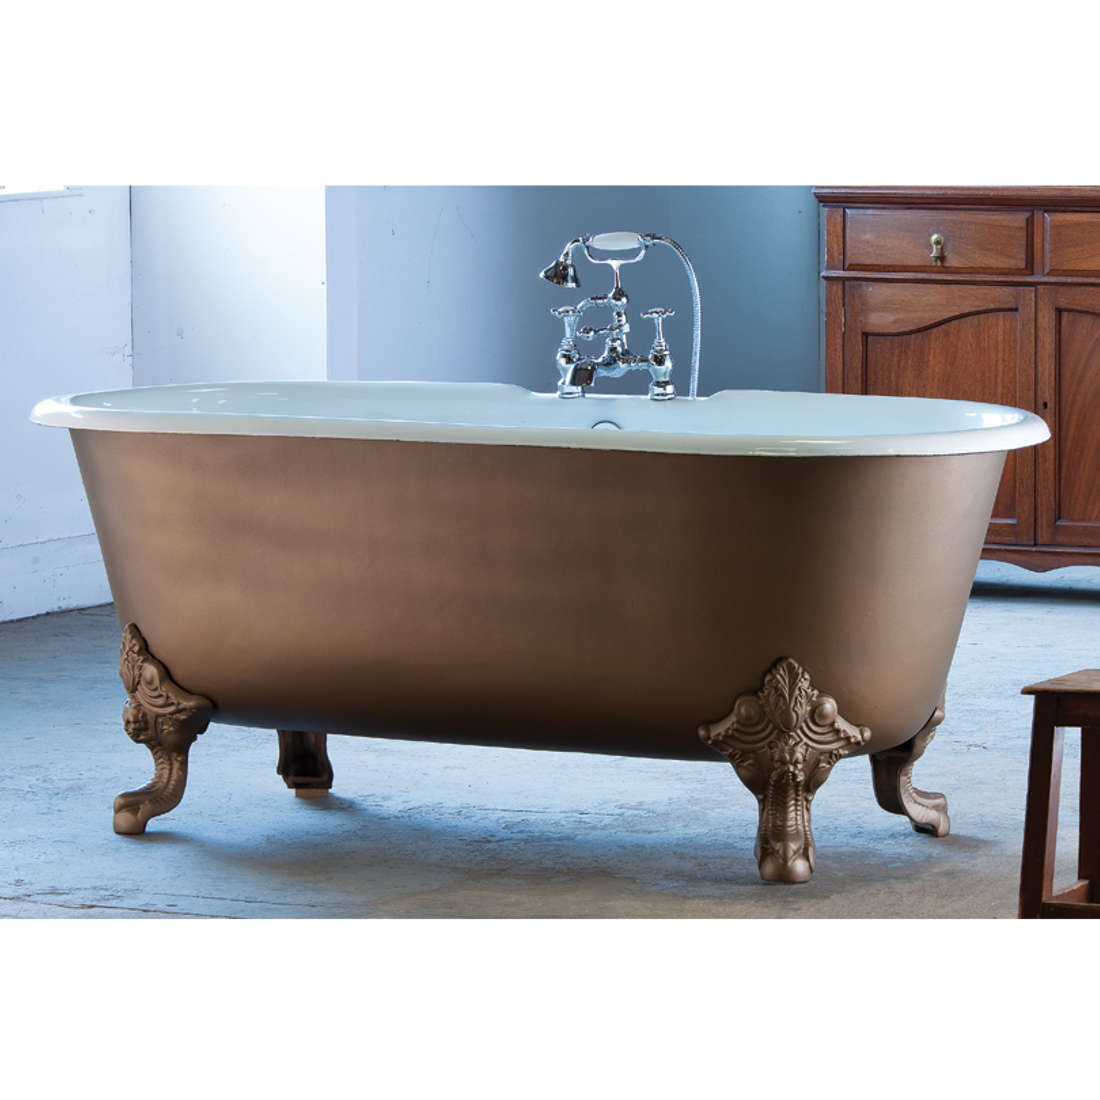 An image of Arroll Baths - The Cheverny Bath - Roll Top Bath - Beige